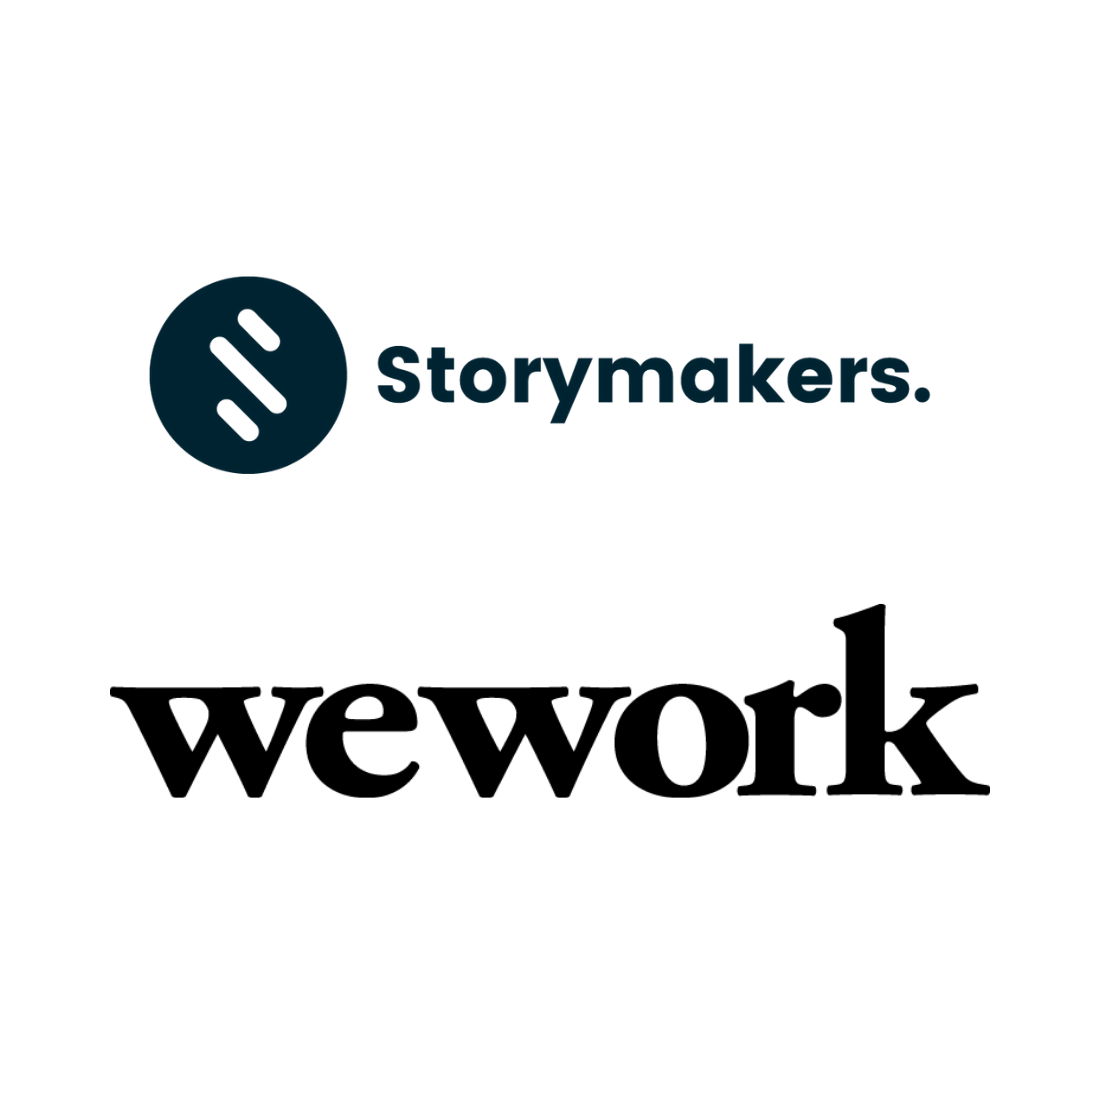 Storymakers - WeWork